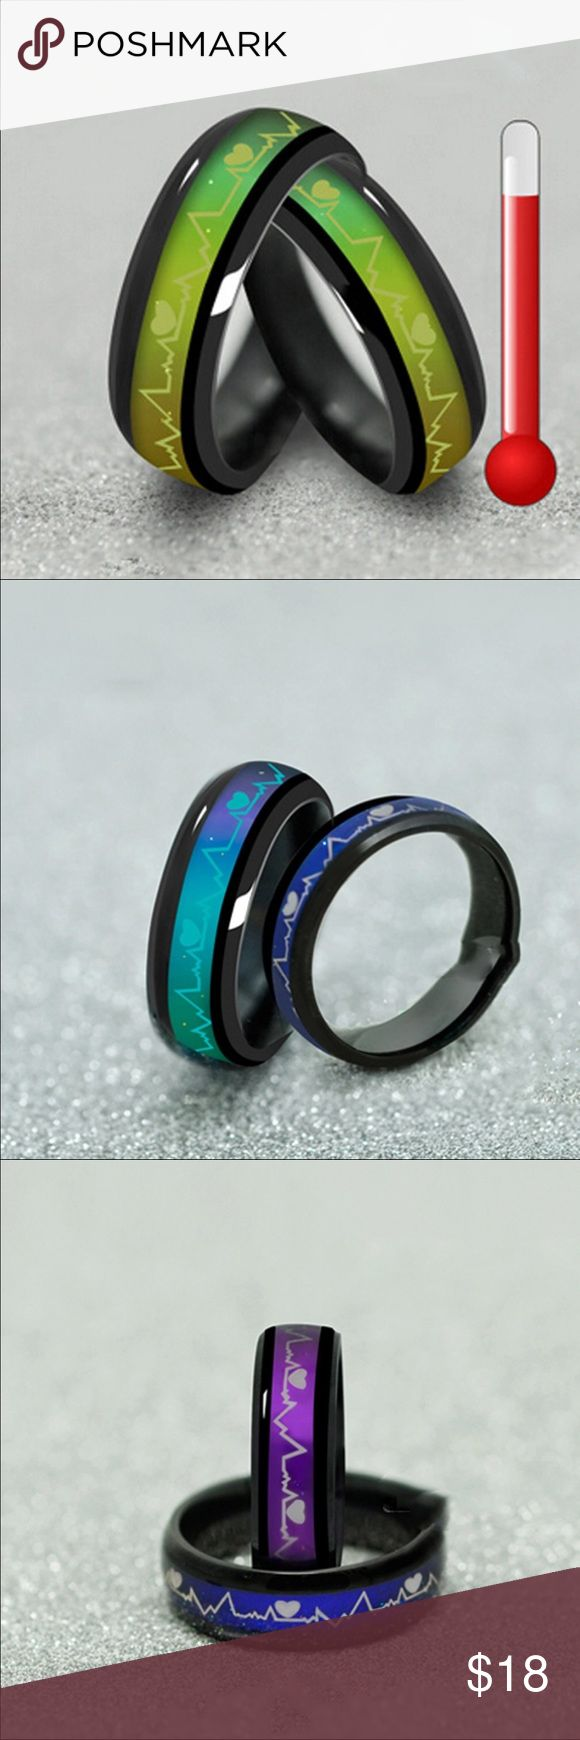 Titanium mood ring(size 7) Brand new in package, price is for one ring. Jewelry Rings